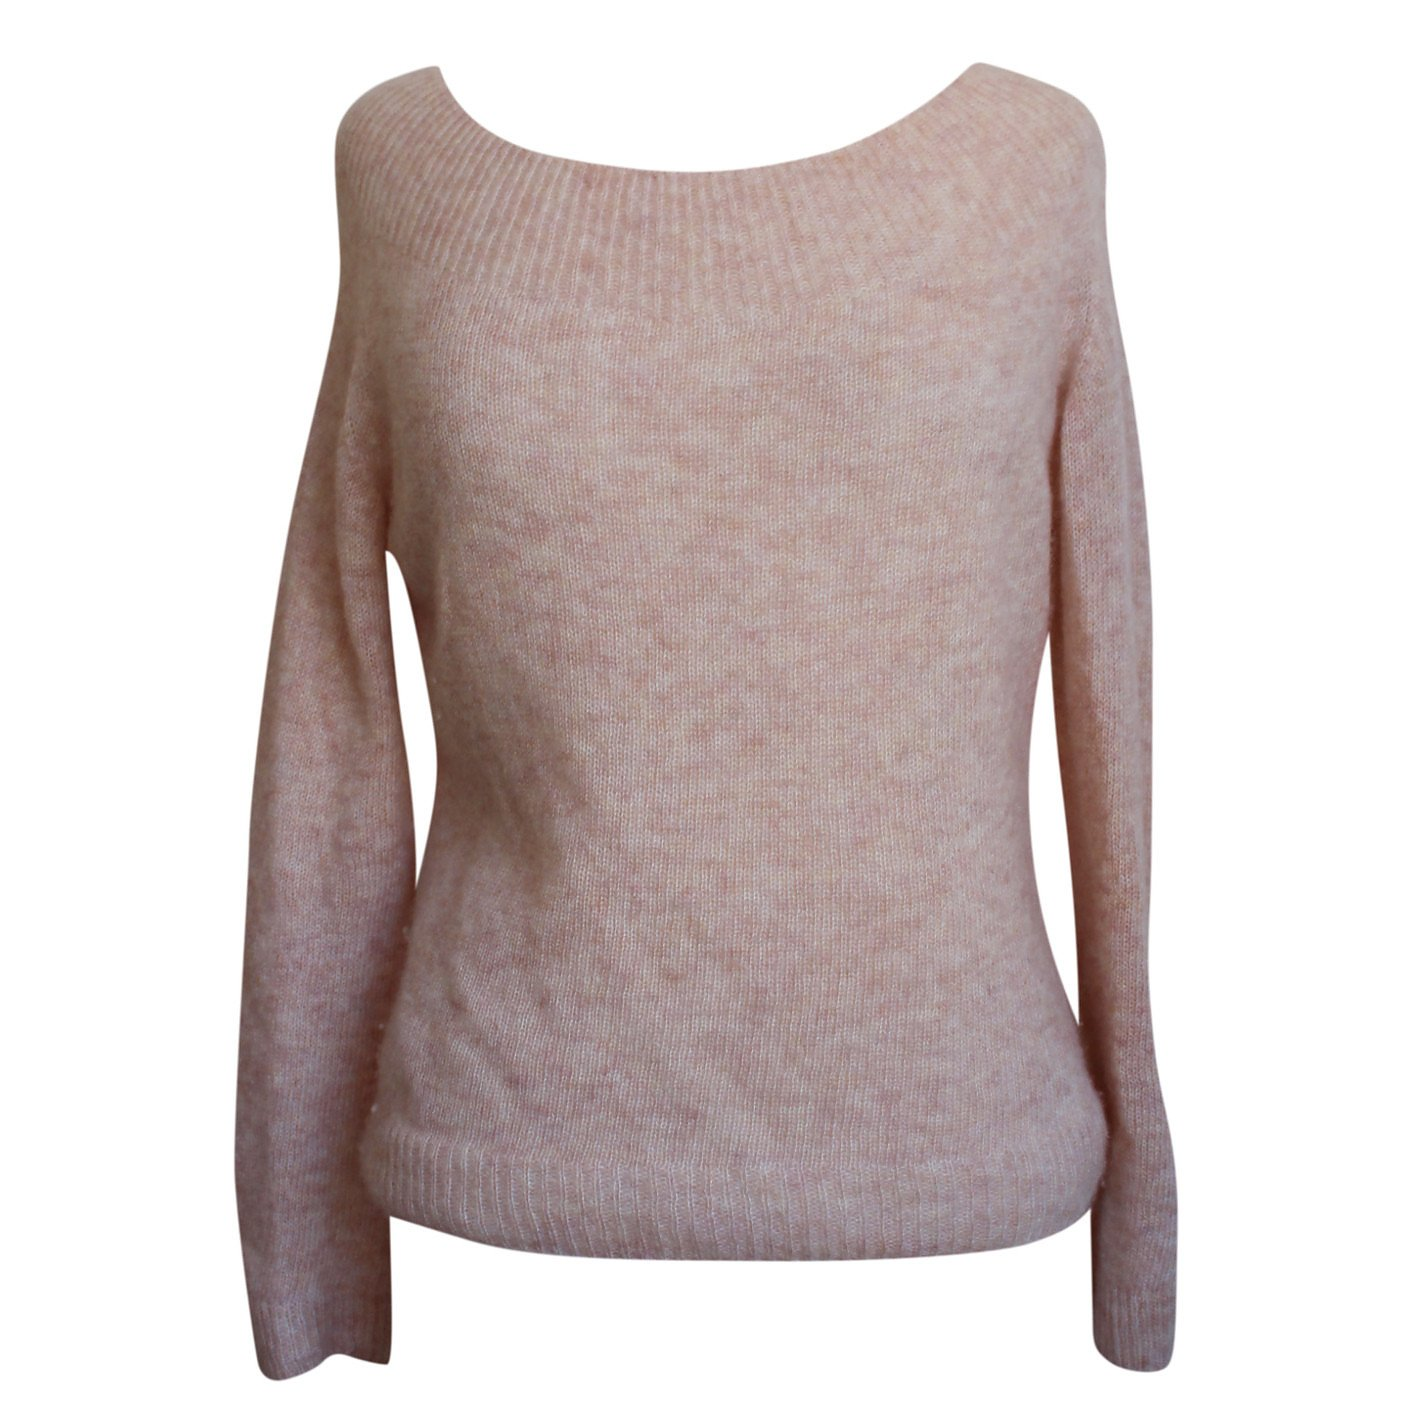 Brock Collection Brook Collection Pink Cashmere Jumper